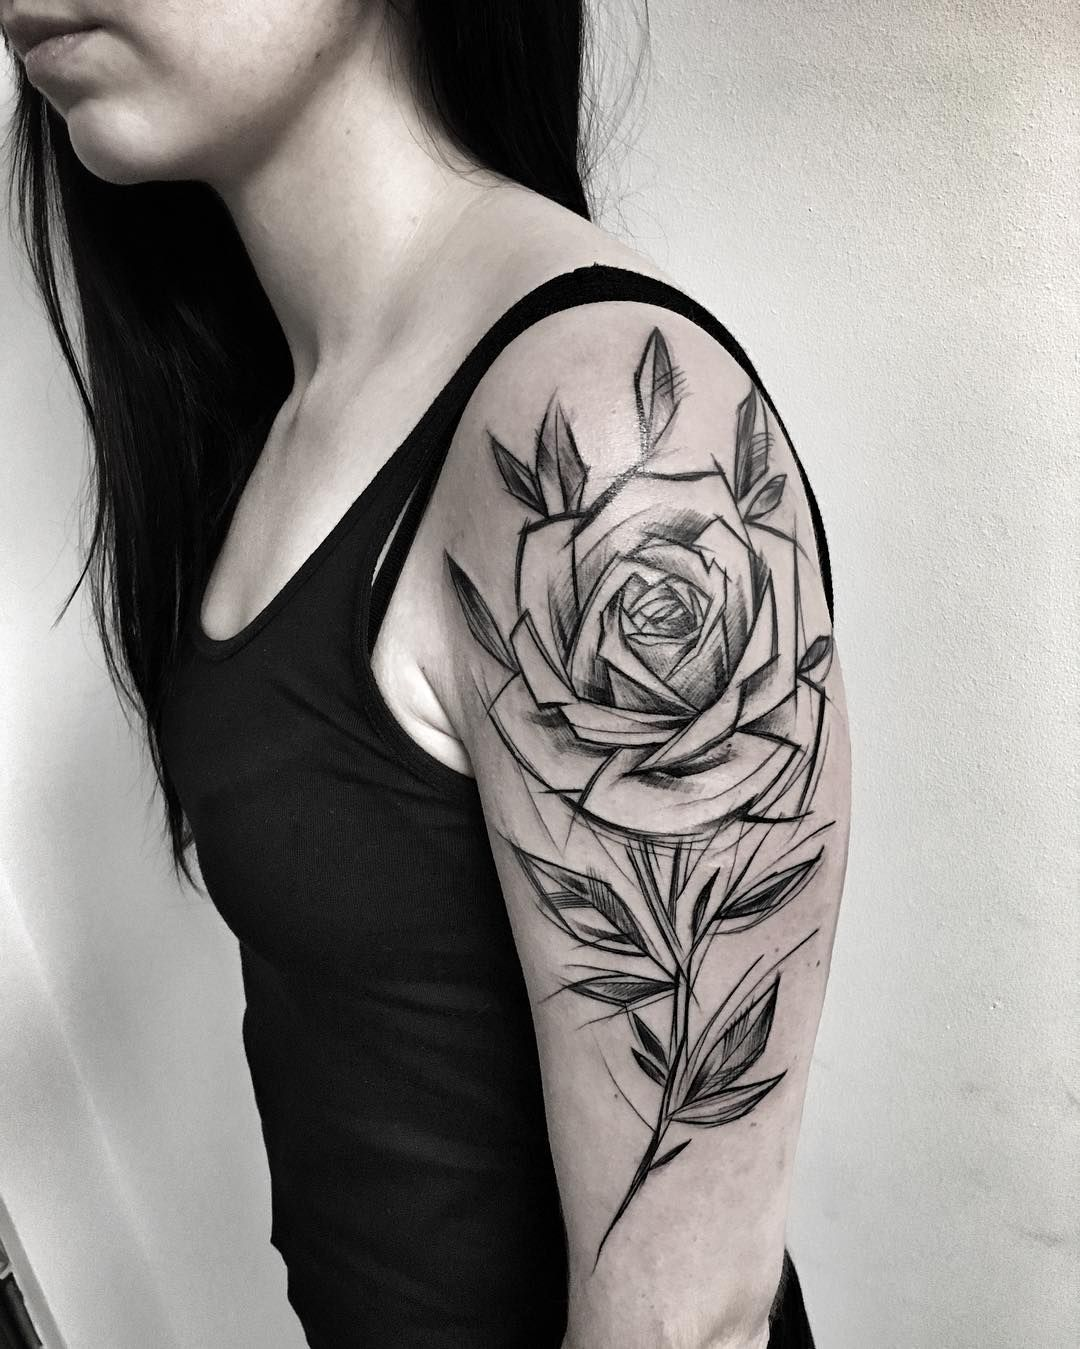 Sketch Style Tattoo Sleeve: Things To Paint My Body With